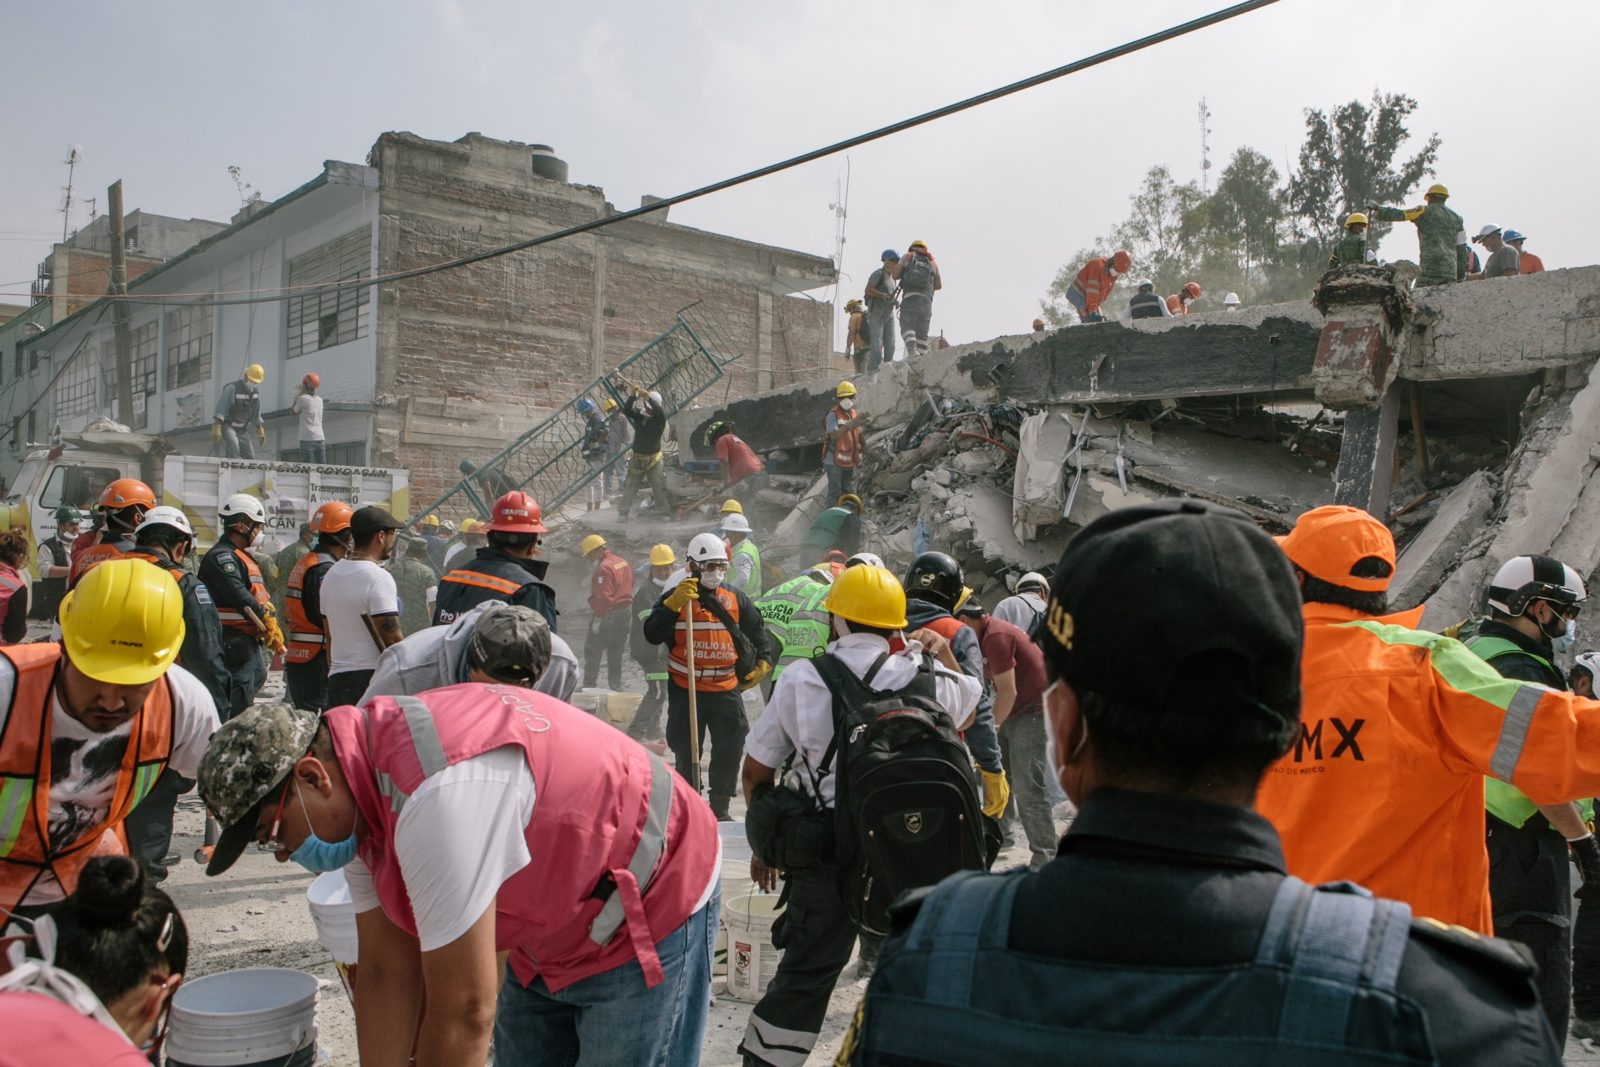 Volunteers, military, police, and city rescue workers dig through the rubble of a fallen textile factory in the Obrera neighborhood of Mexico City on Wednesday Sept. 20, 2017 a day after an earthquake collapsed many buildings in the city. There are still suspected survivors inside. 